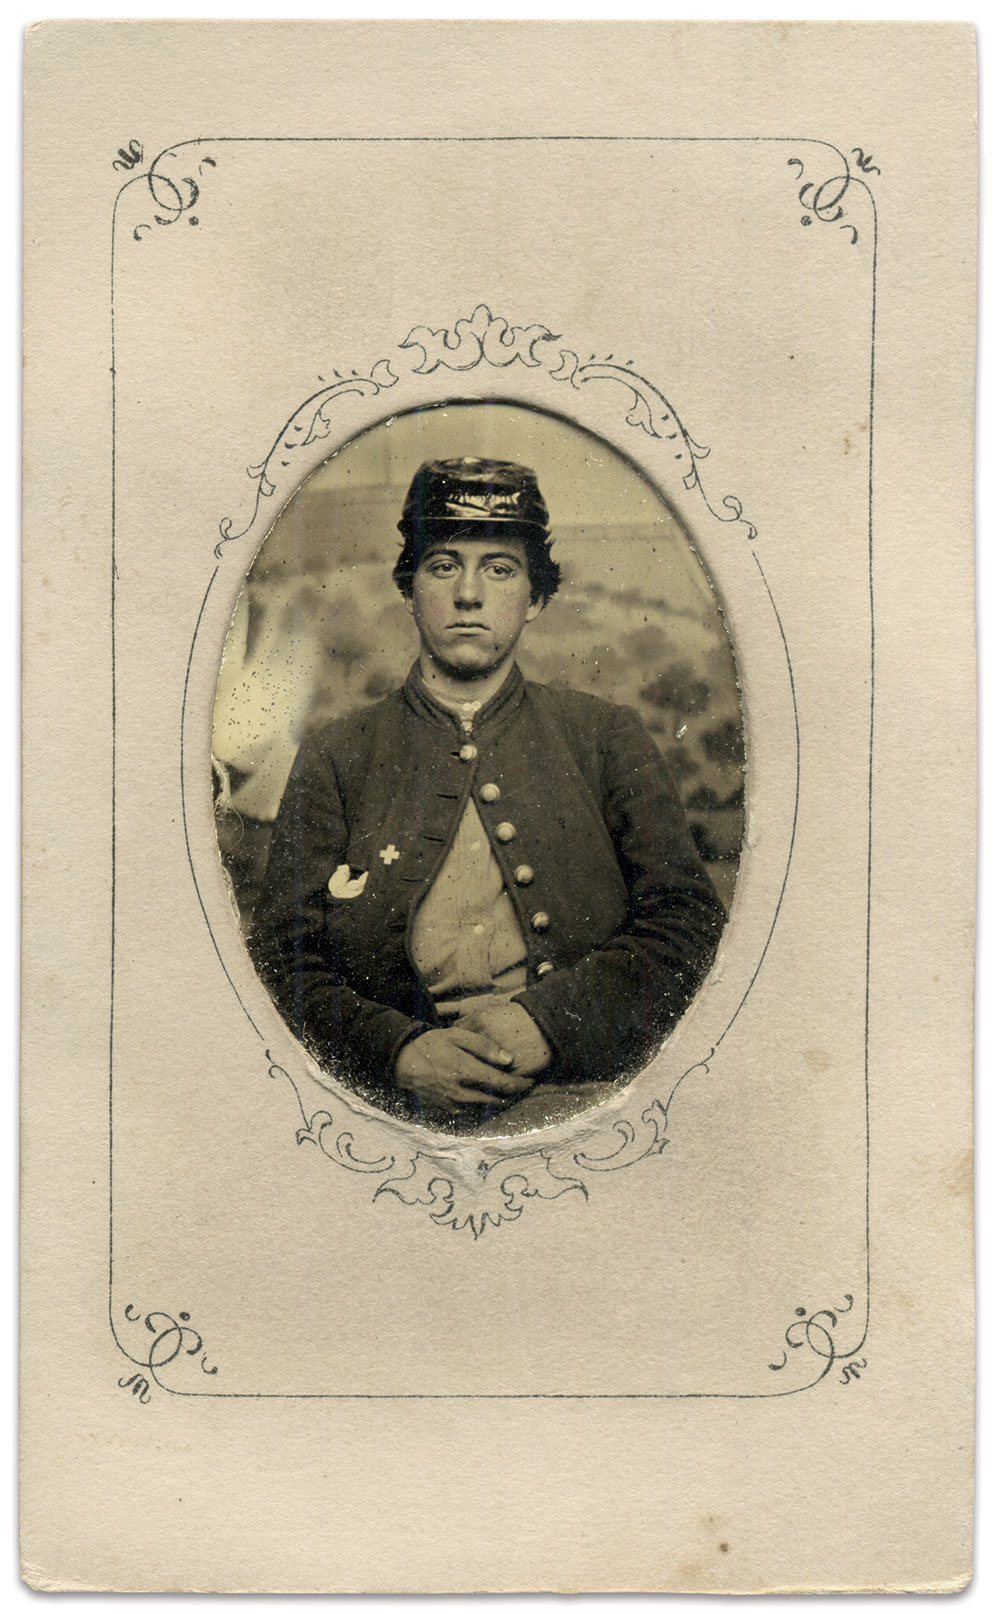 Sixteenth-plate tintype by Gibson's Photograph gallery, Army of the Potomac. John Gibson Collection.